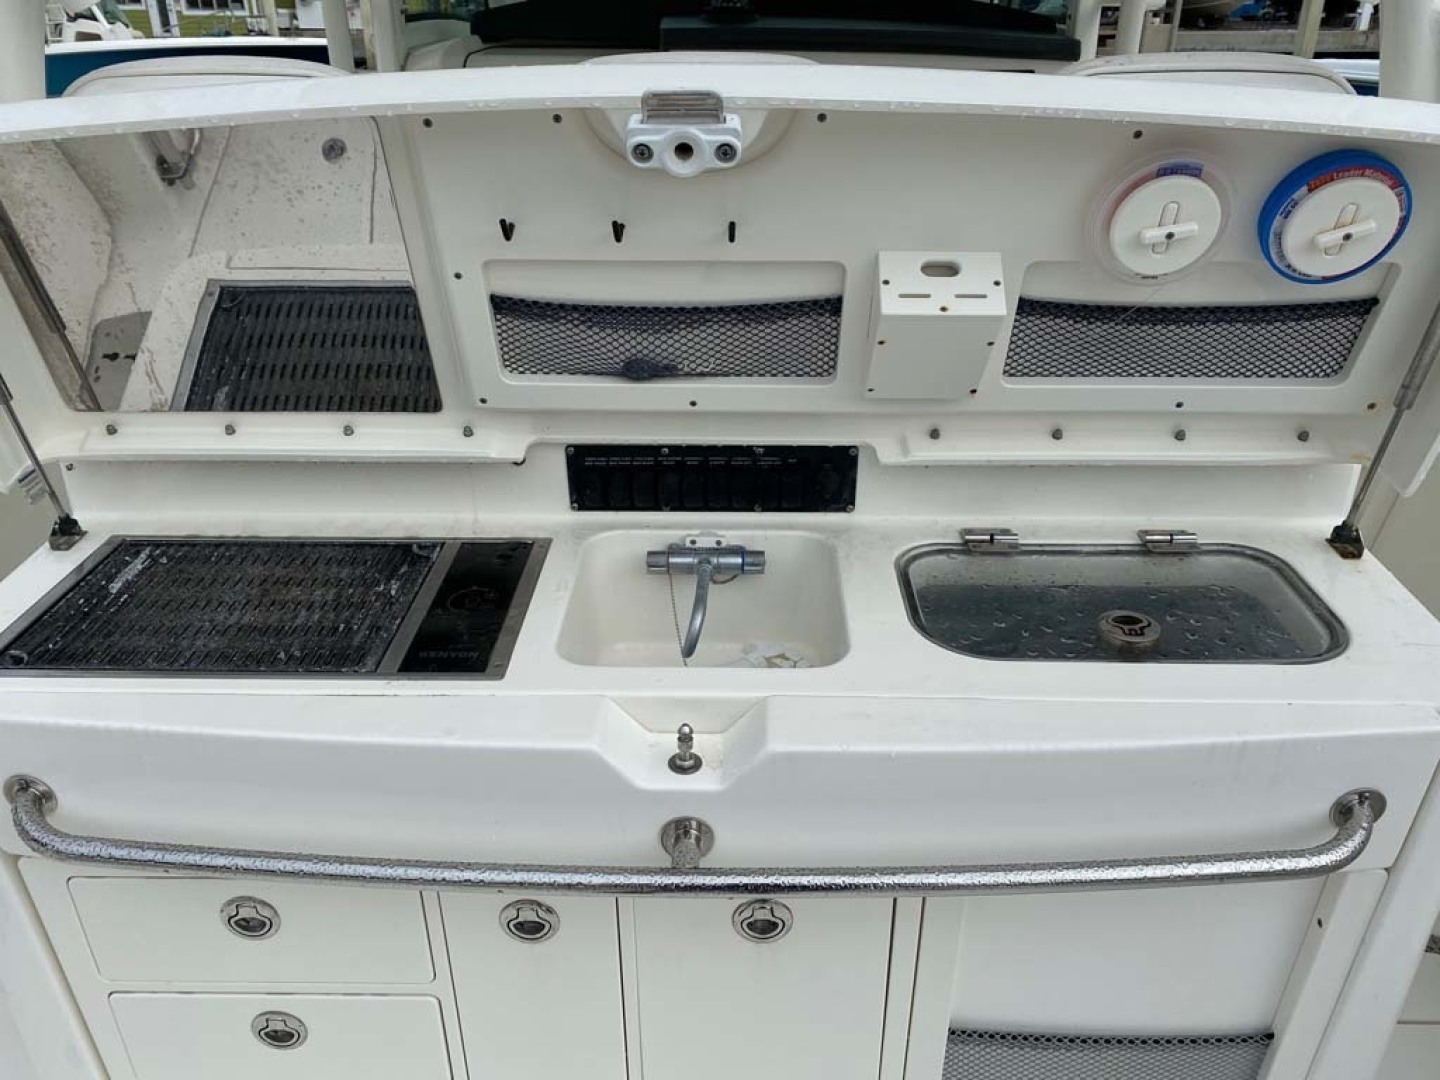 Boston Whaler-370 Outrage 2015-Reel Equity Fort Lauderdale-Florida-United States-Grill, Refrigerator Freezer And Live Well-1302004 | Thumbnail